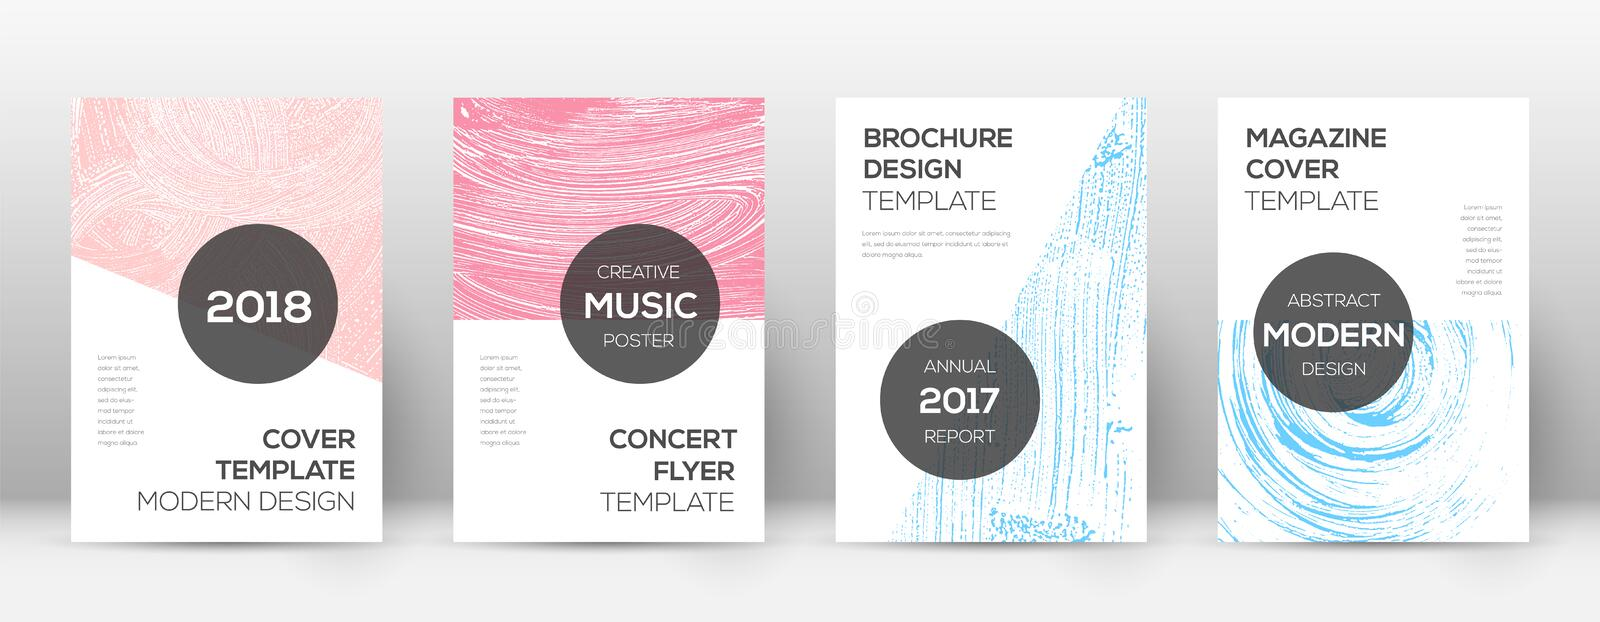 Cover page design template. vector illustration